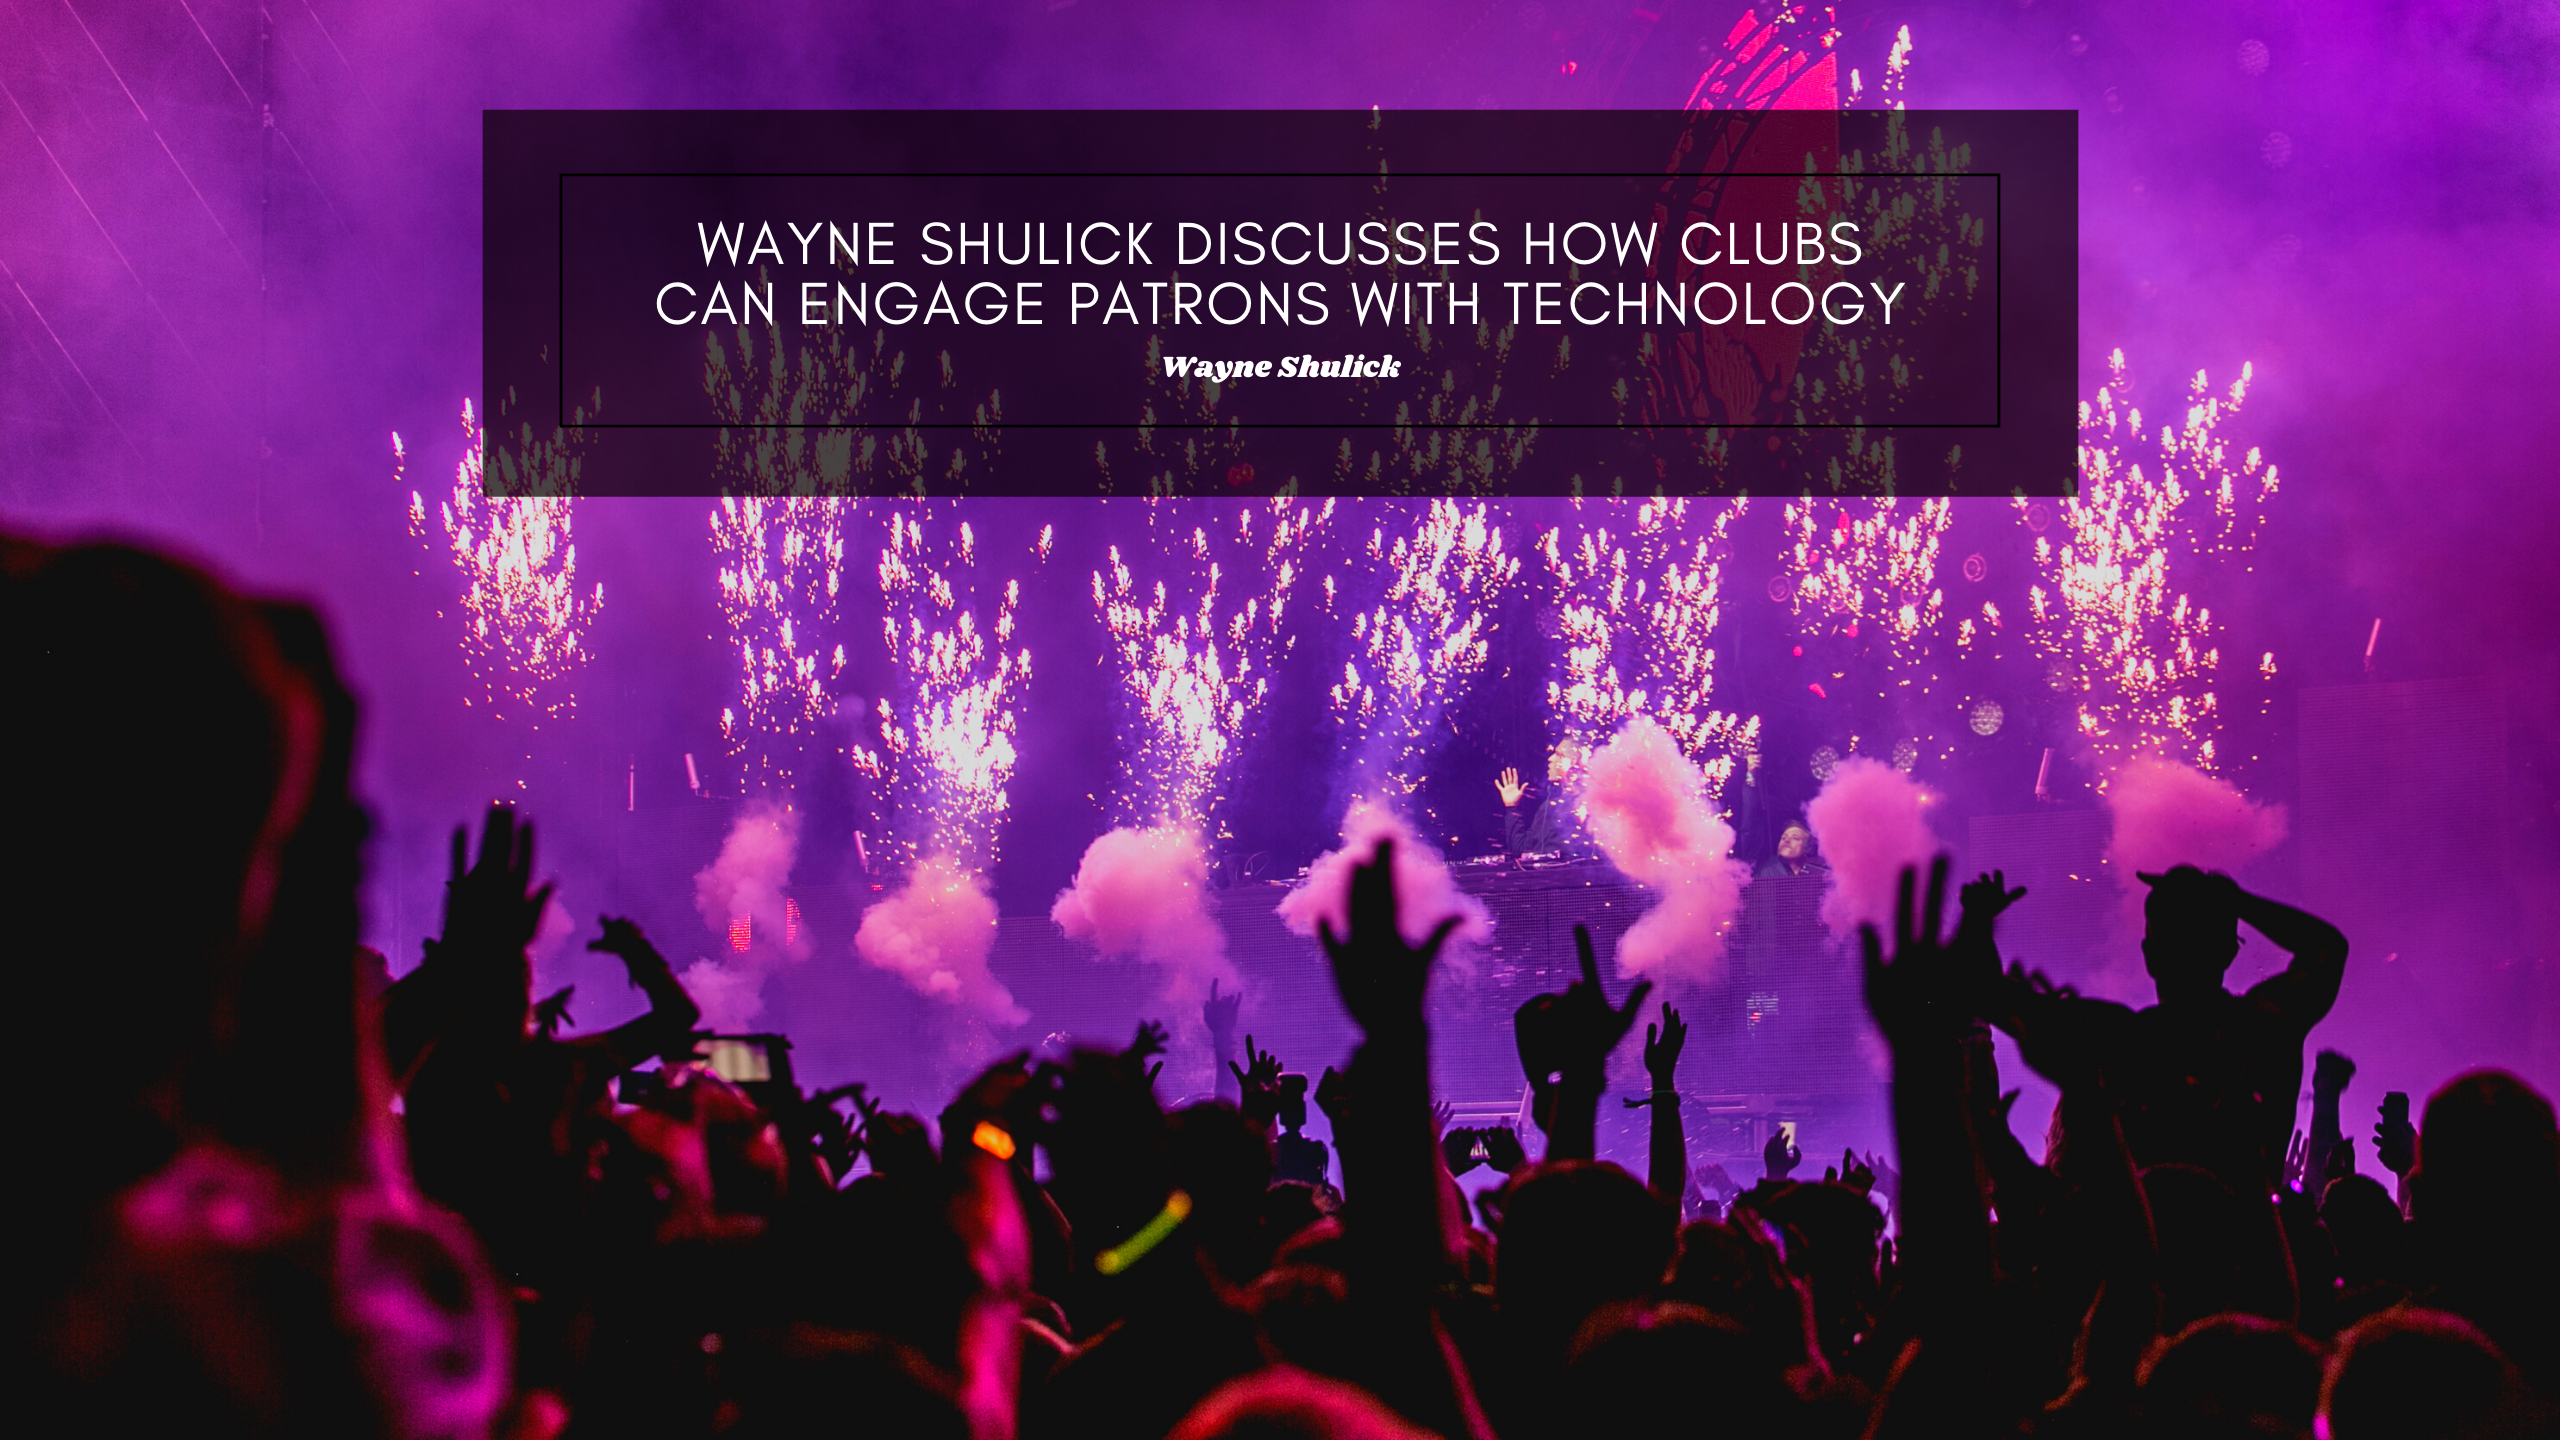 Wayne Shulick Discusses How Clubs Can Engage Patrons With Technology